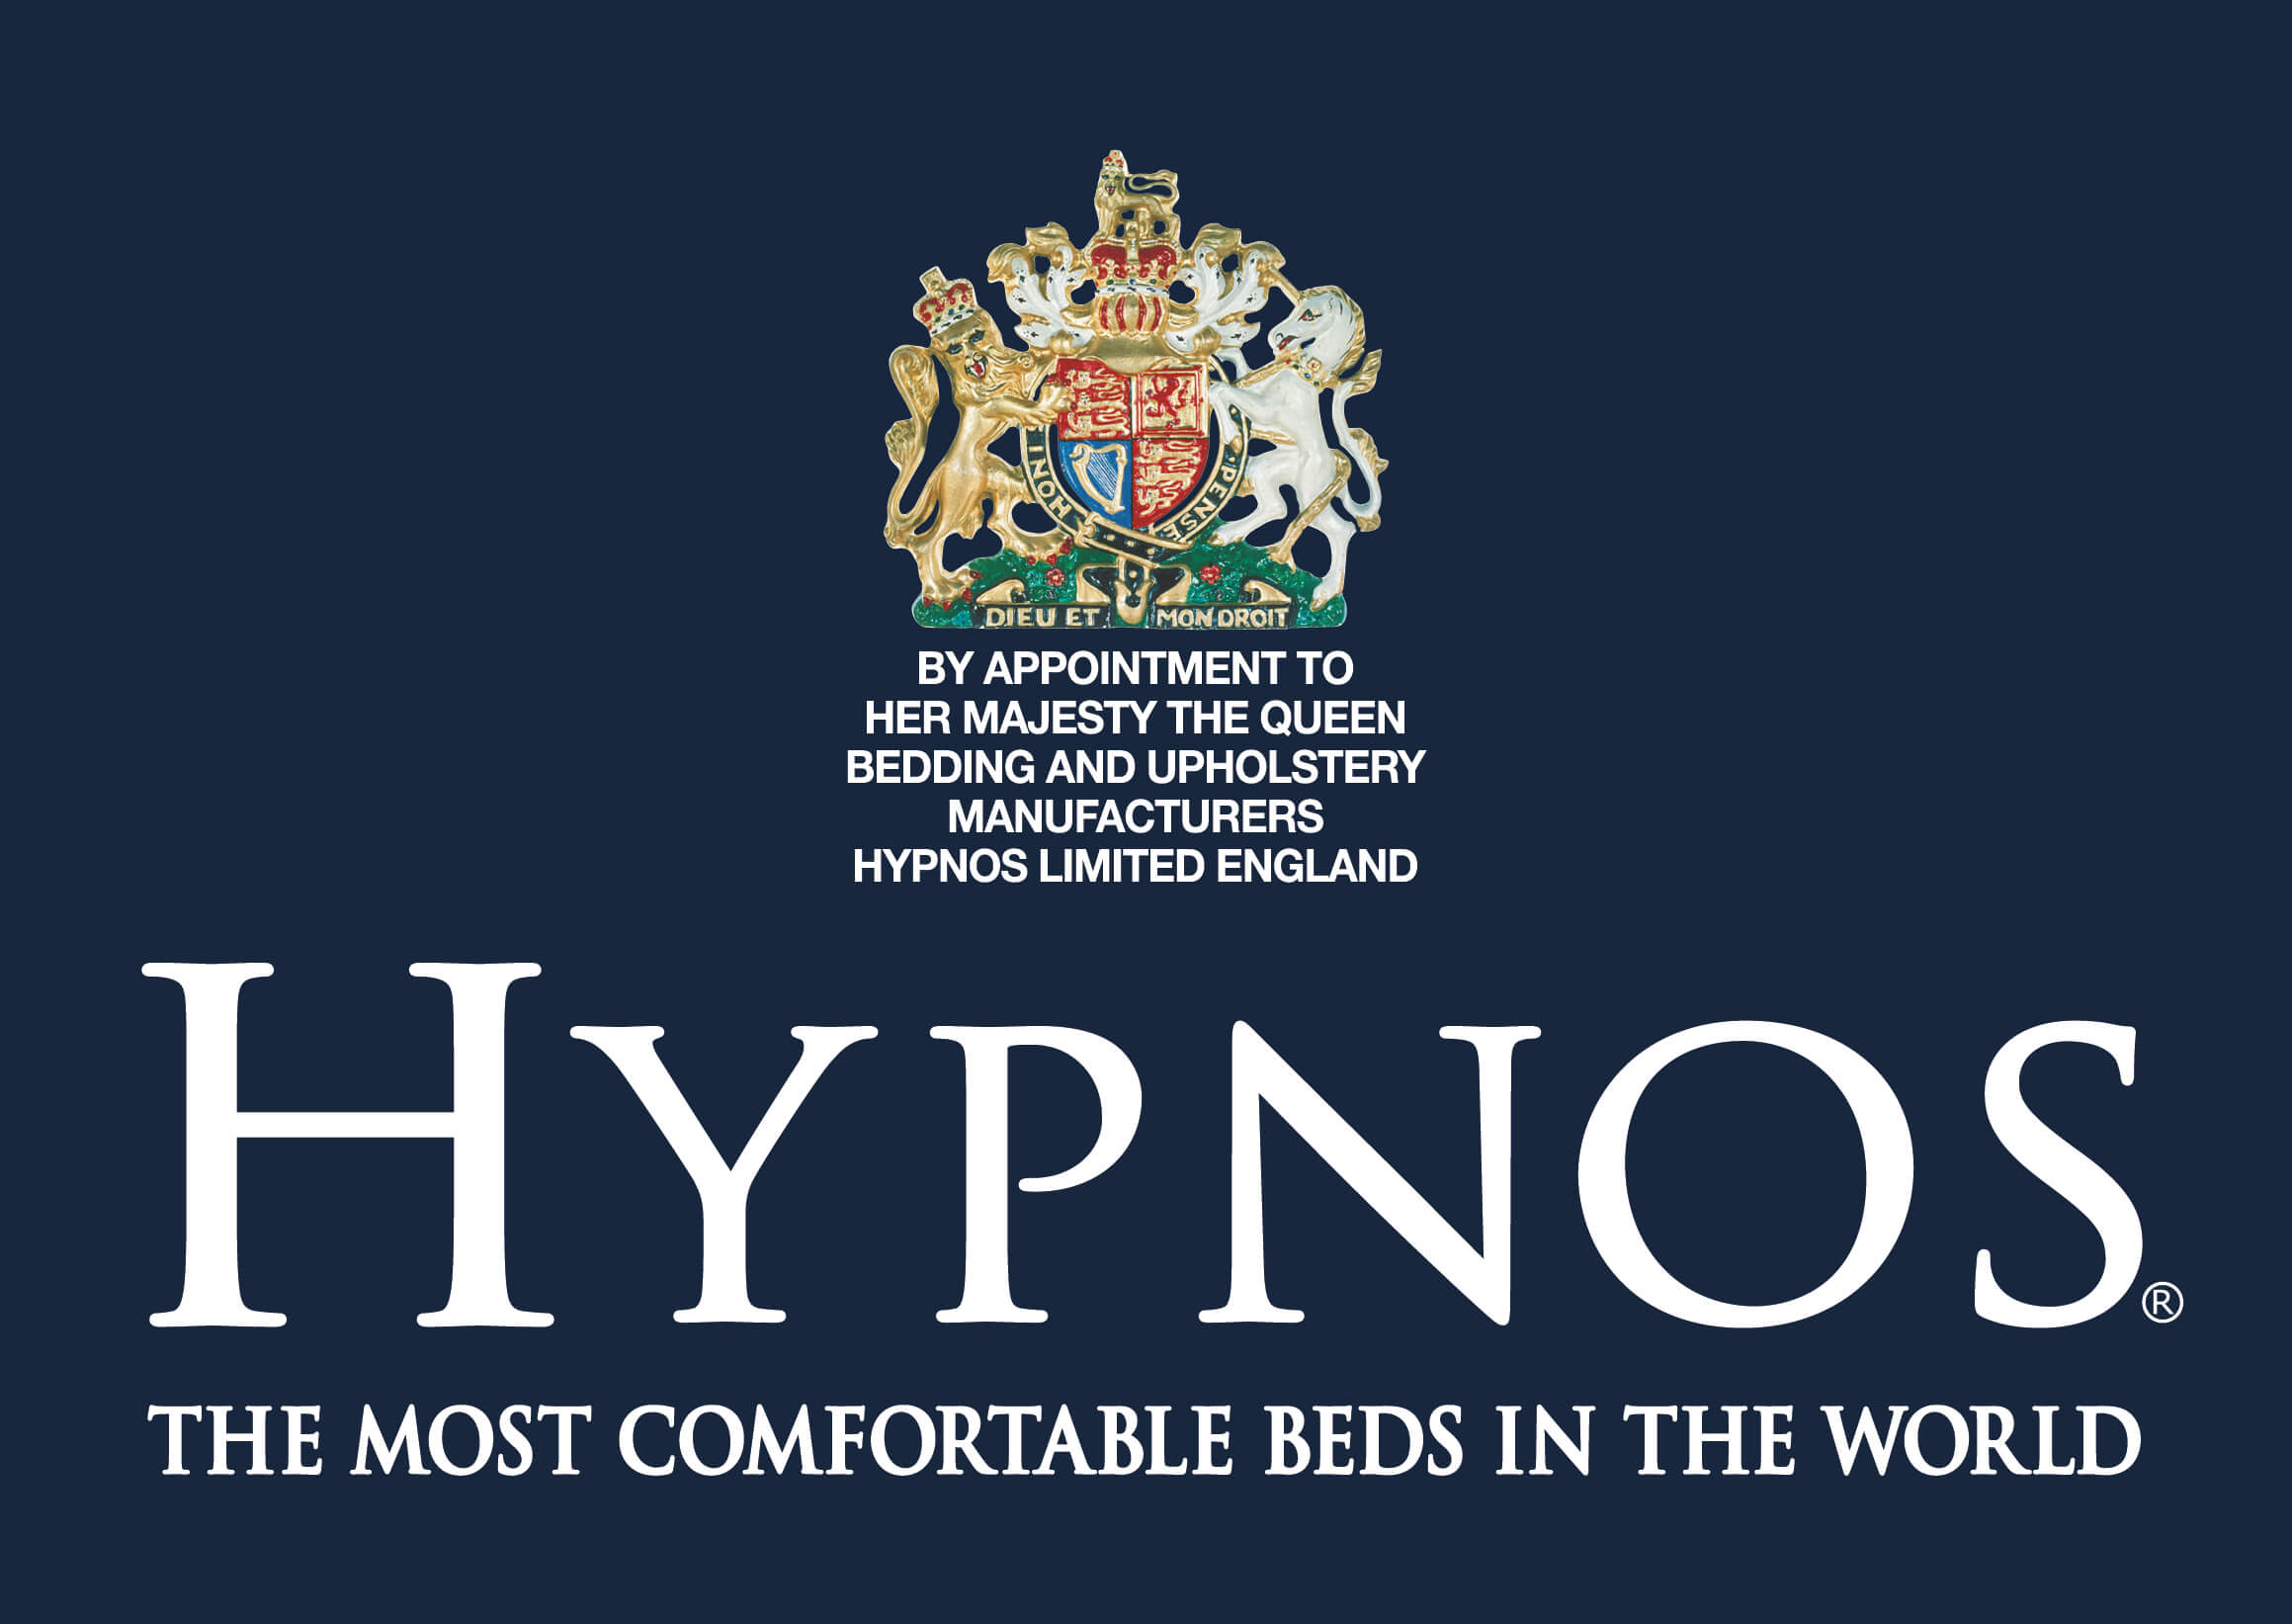 Custom Made Beds With British Heritage Hypnos Beds